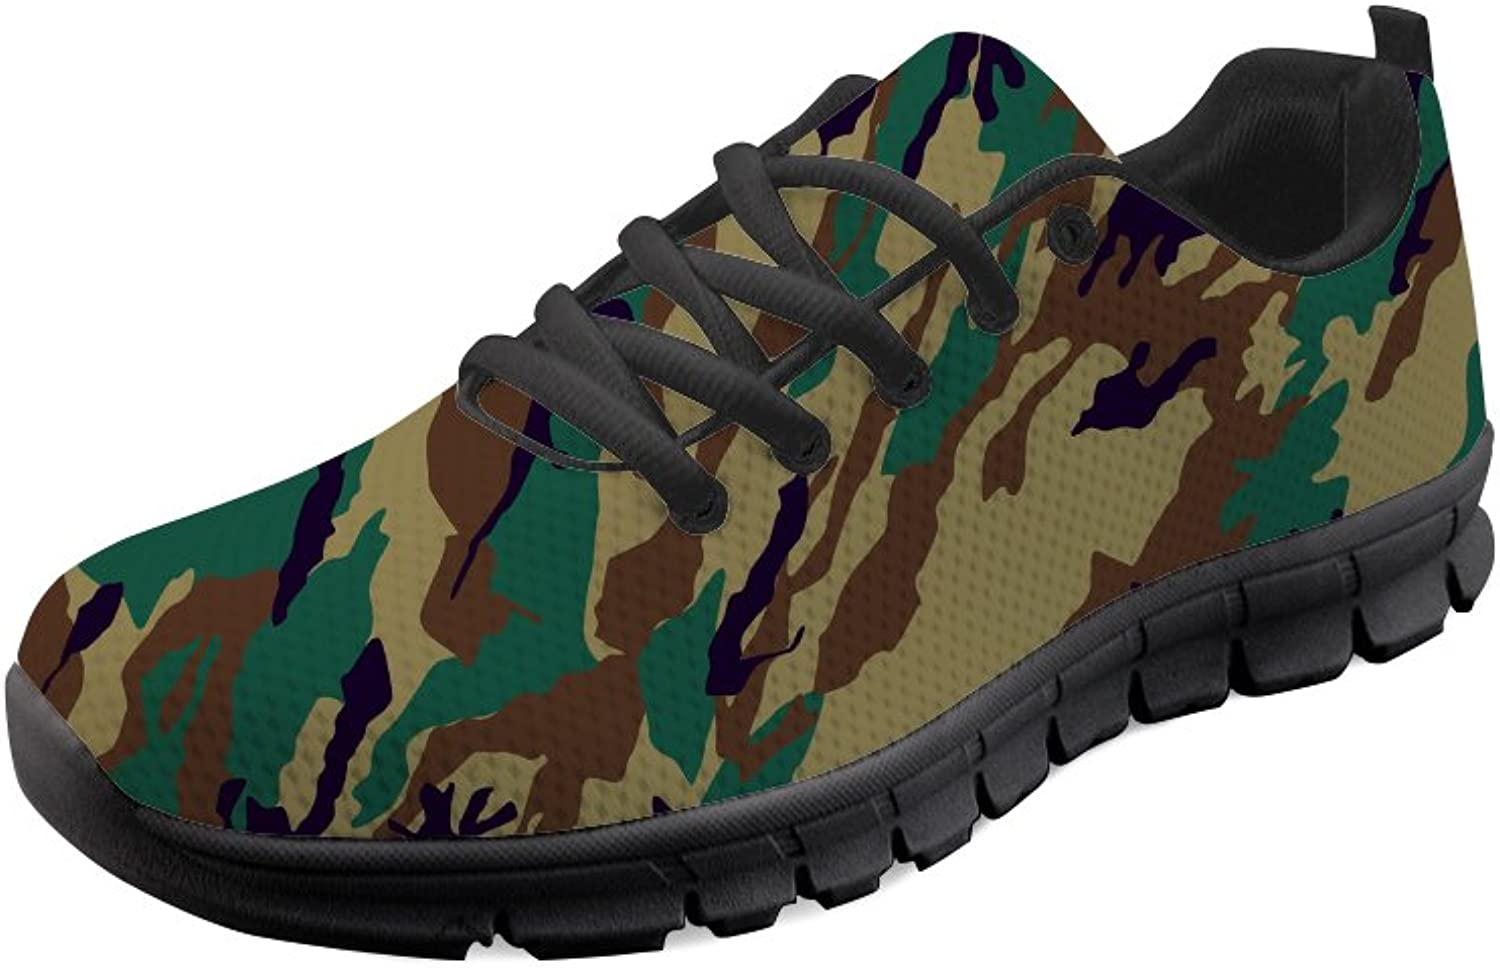 HUGS IDEA Camouflage Men's Lightweight Running shoes Lace up Mesh Sport Sneakers